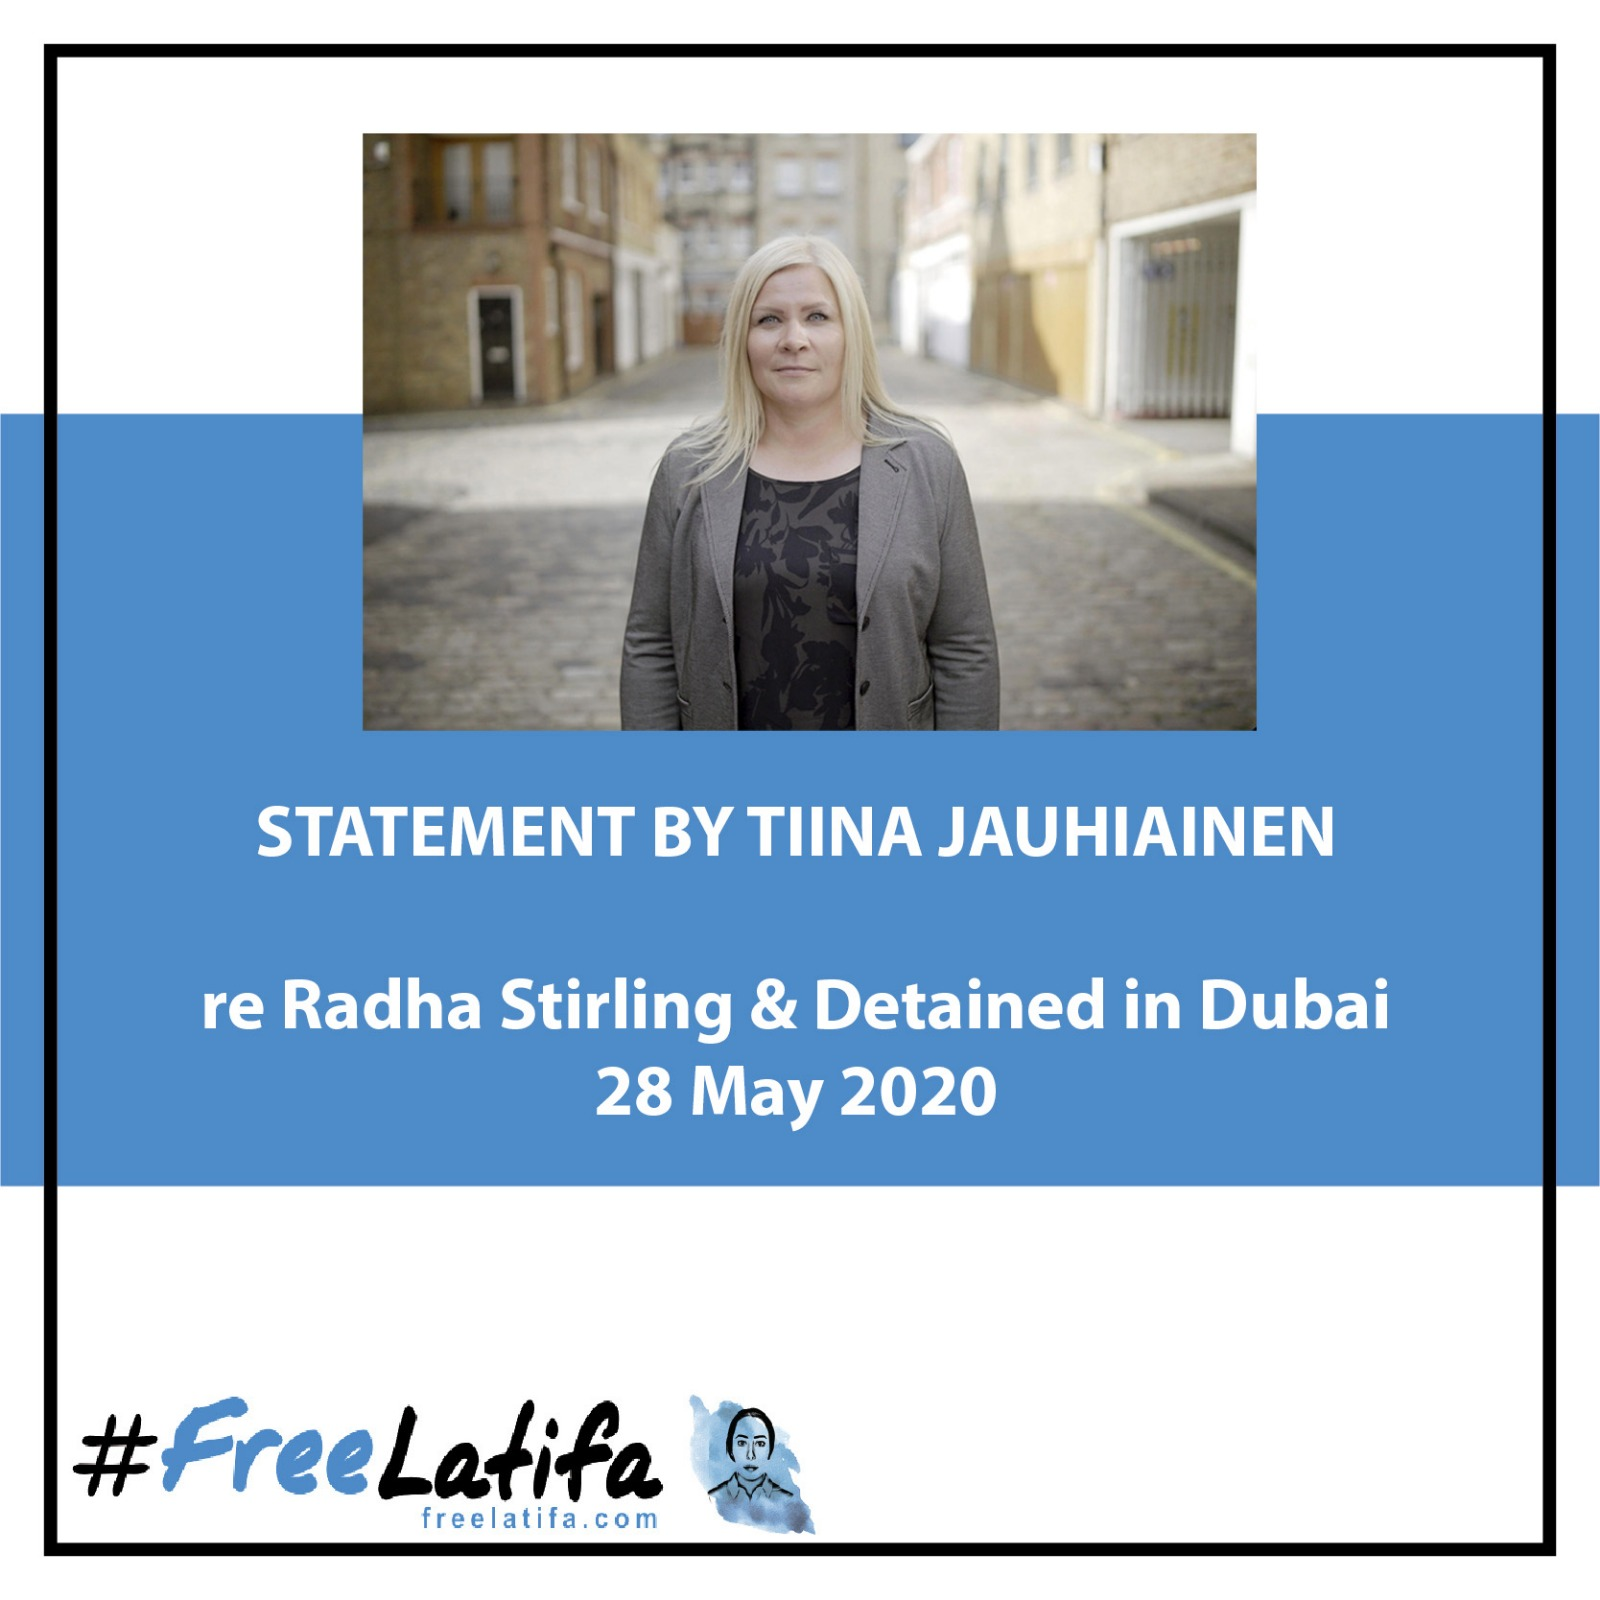 Statement by Tiina Jauhiainen, following comments by Radha Stirling